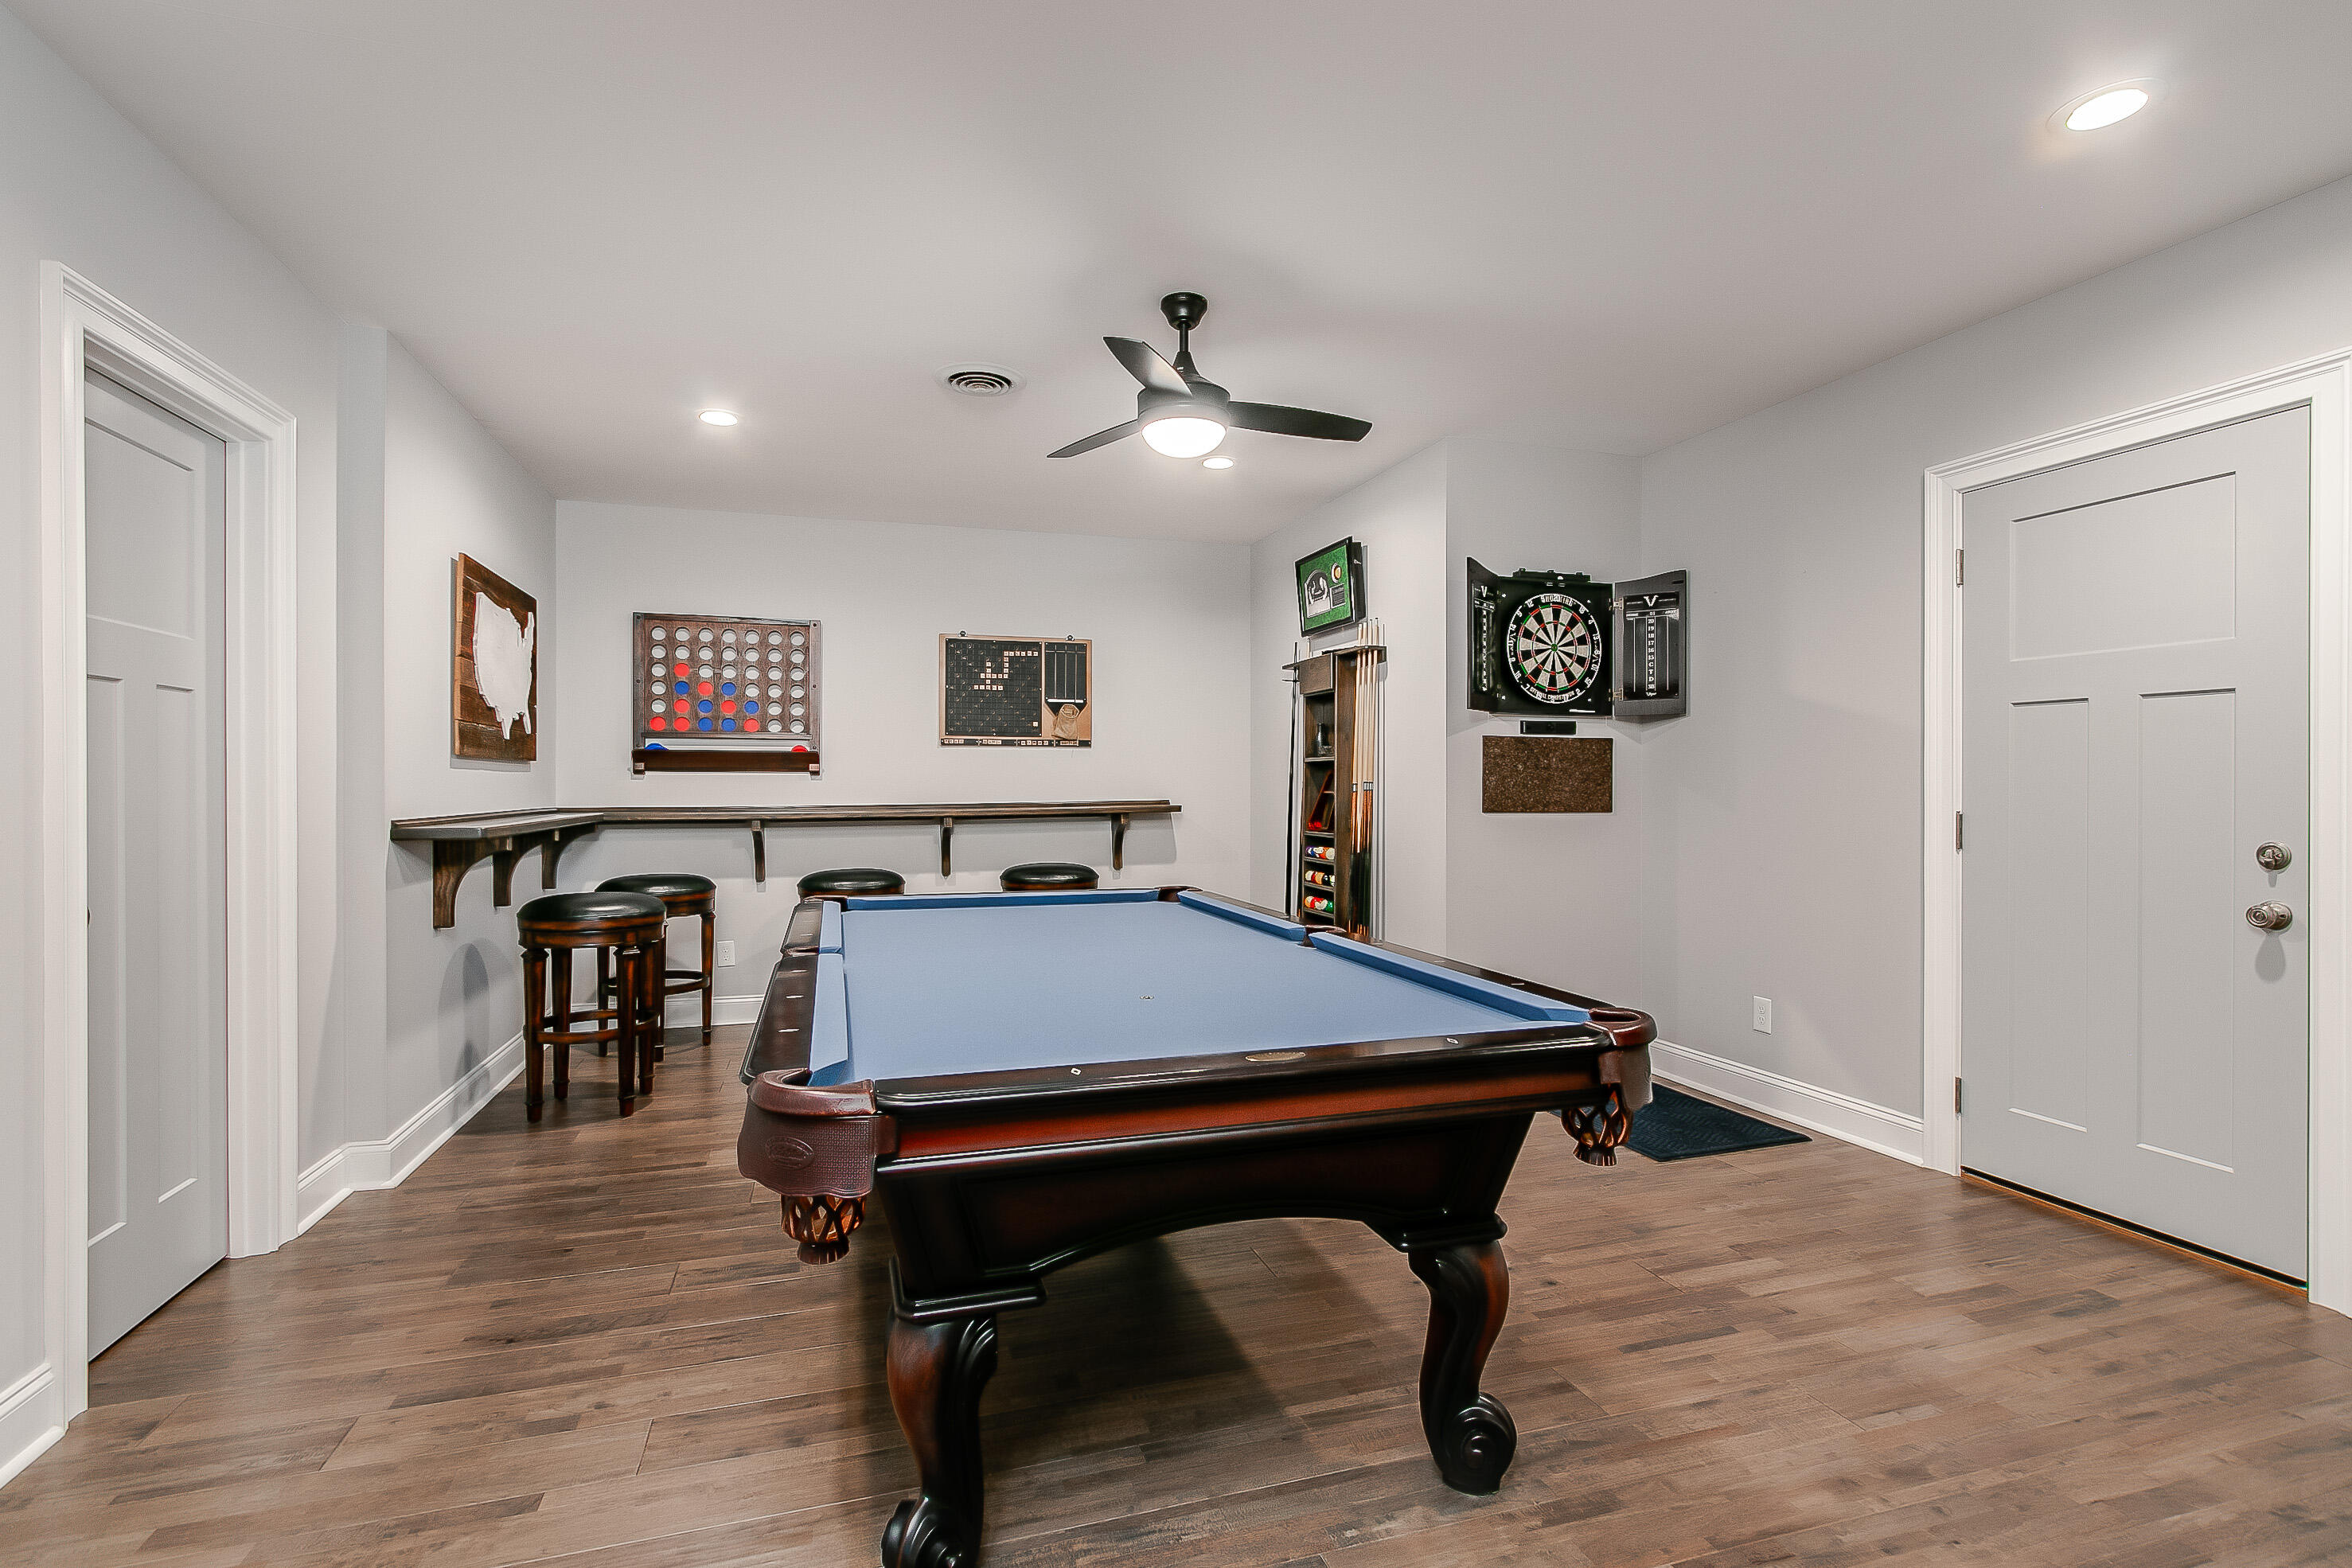 Rec room complete with pool table